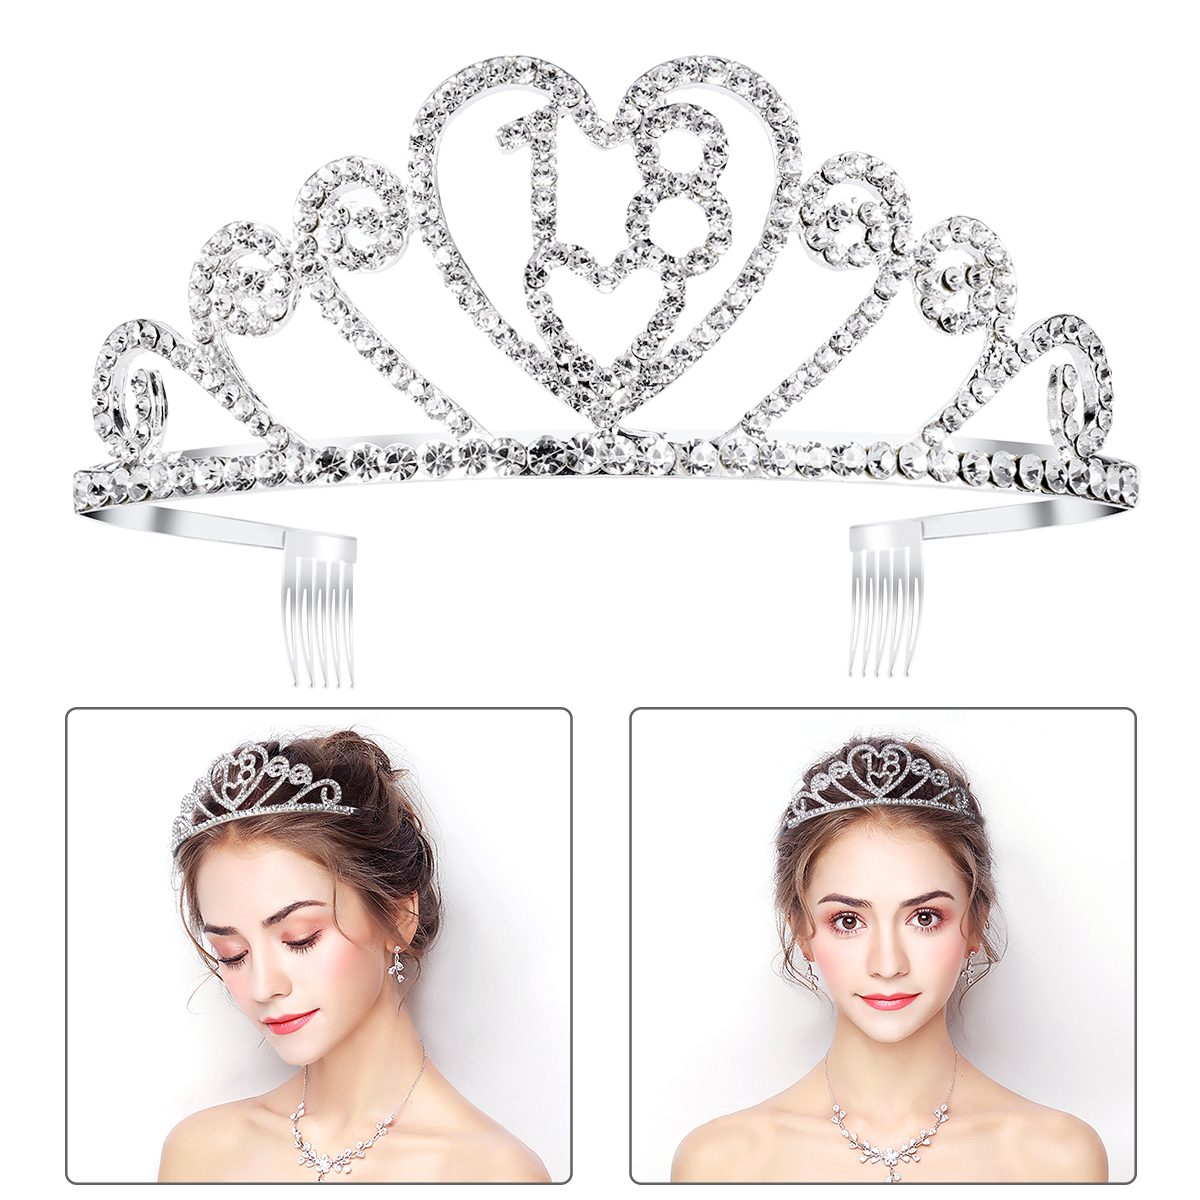 PIXNOR <font><b>18th</b></font> Girls Adult Ceremony Rhinestone Decorated <font><b>Crown</b></font> Hair Barrettes Clip Loop Hairband for 18 <font><b>Birthday</b></font> Wedding Supplier image